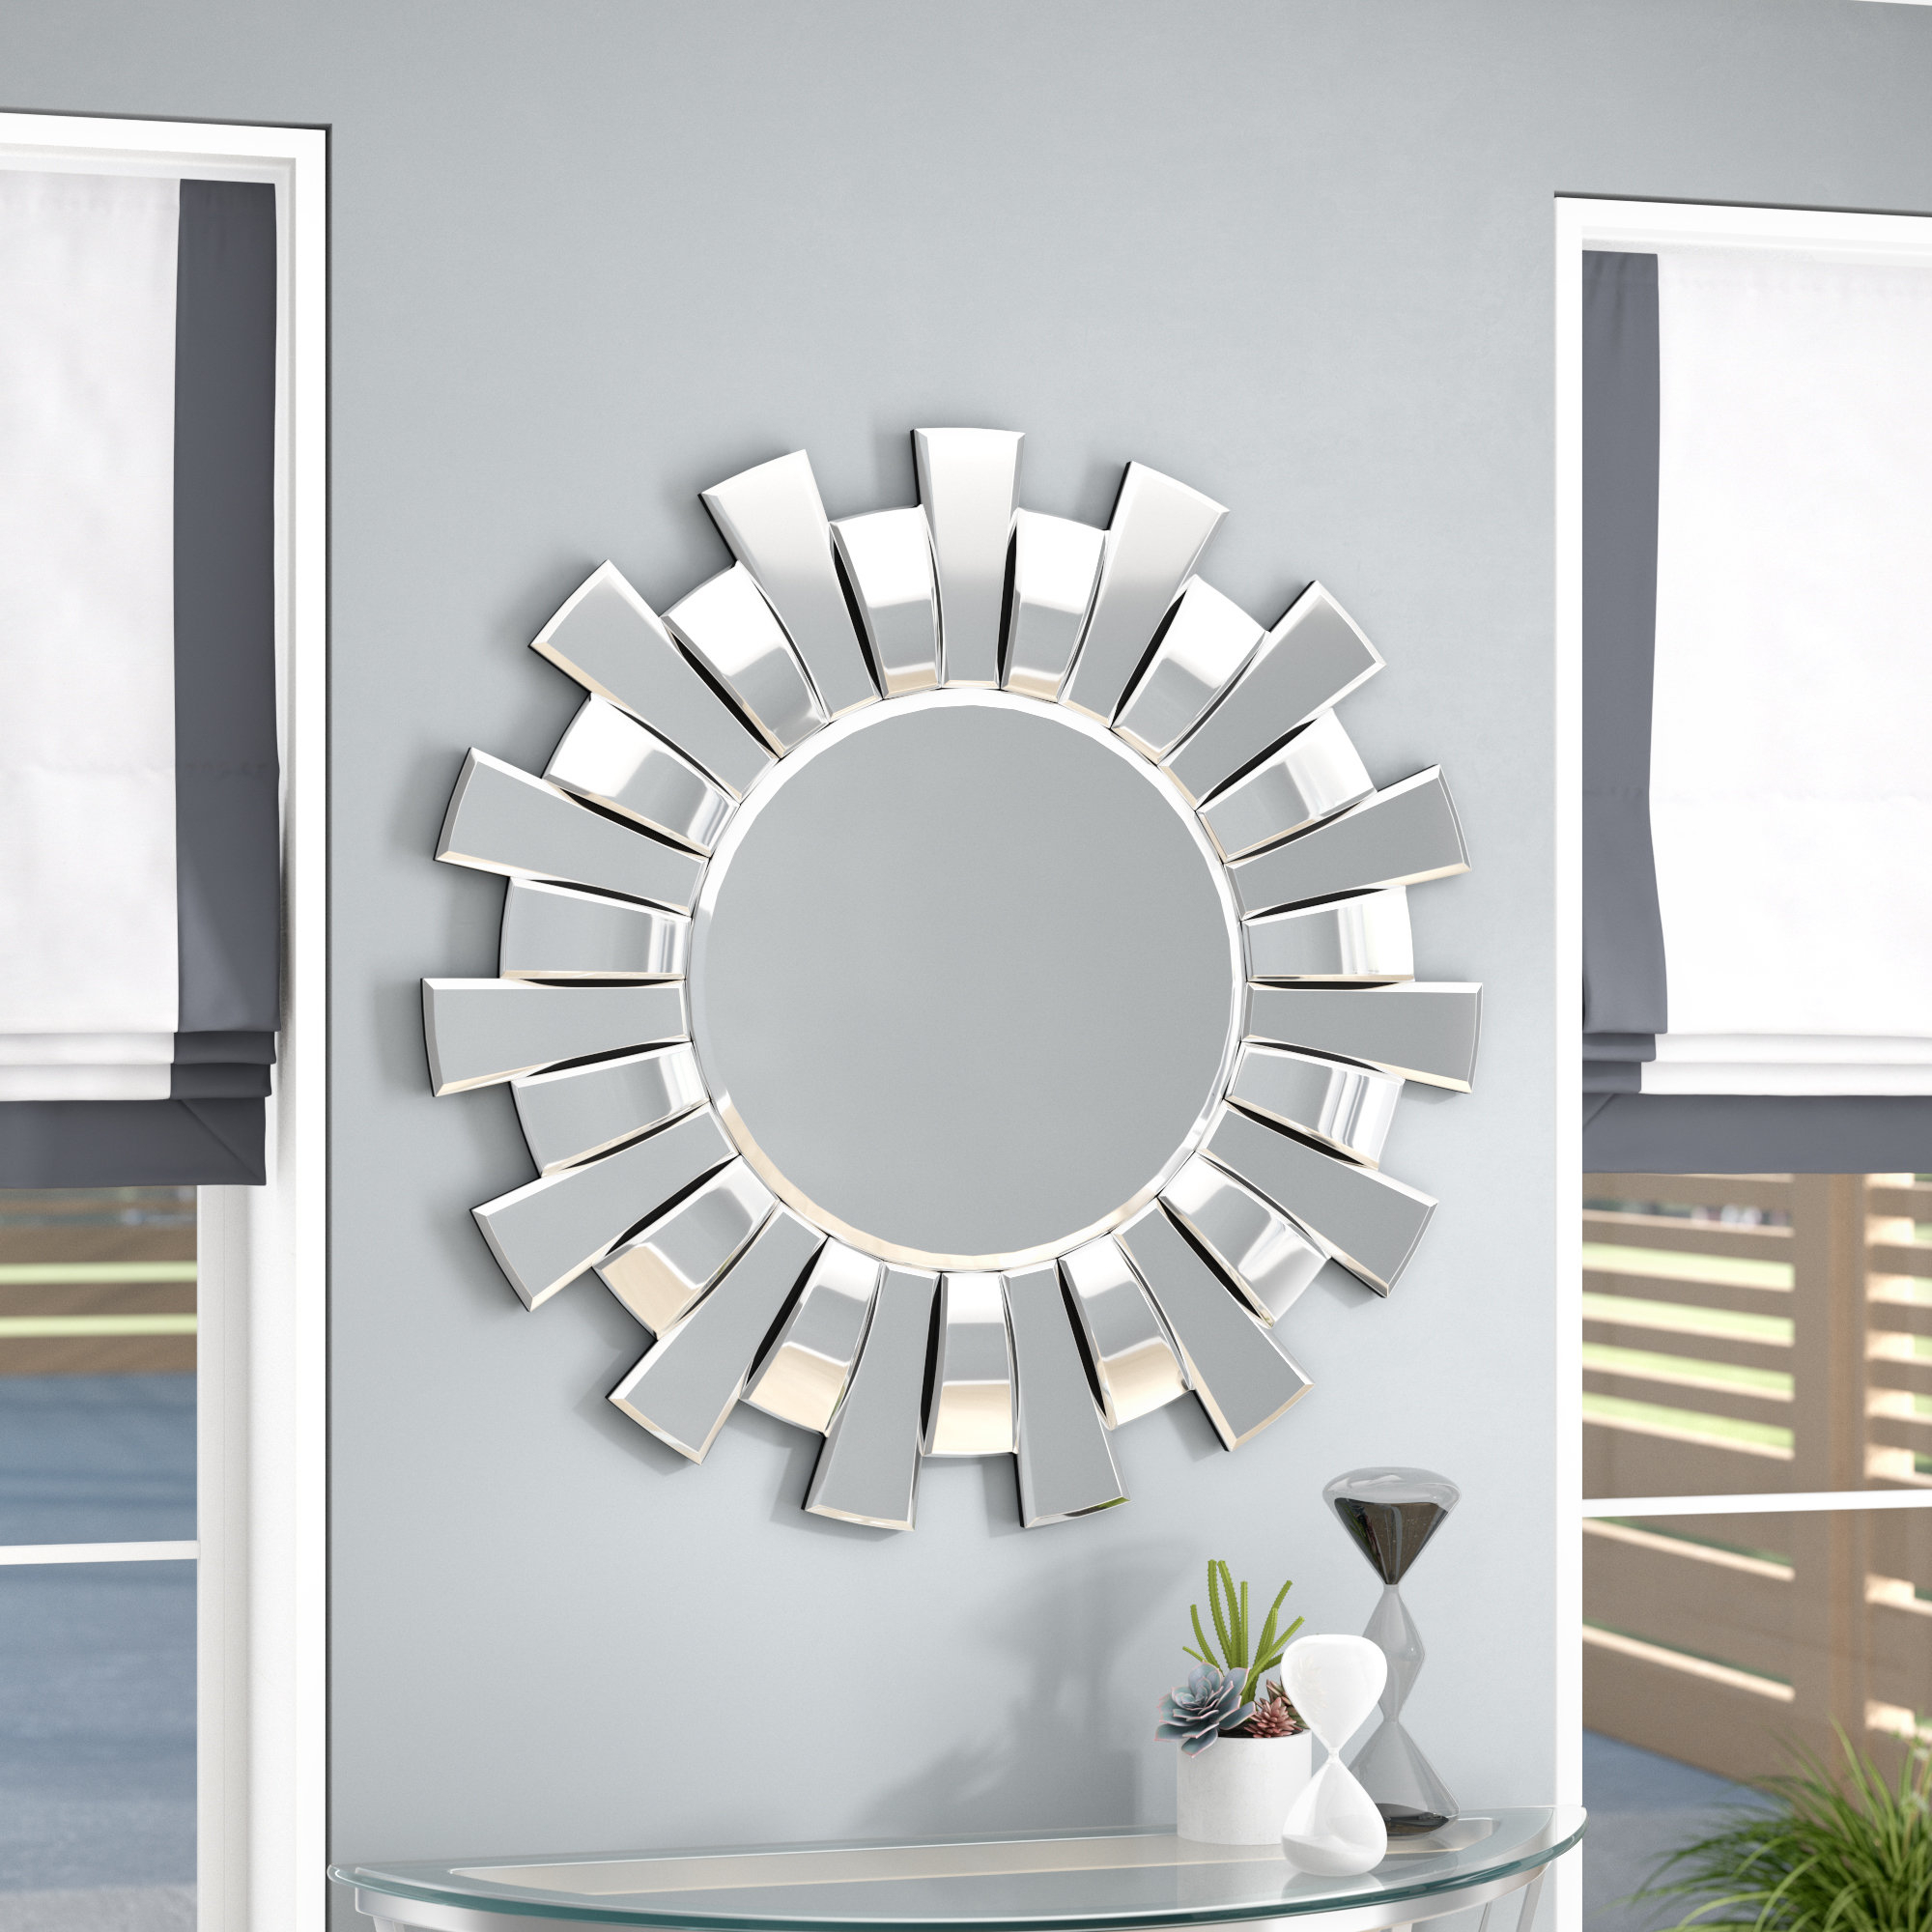 Fashionable Details About Orren Ellis Sun Burst Circular Glam Beveled Wall Mirror Throughout Glam Beveled Accent Mirrors (View 20 of 20)